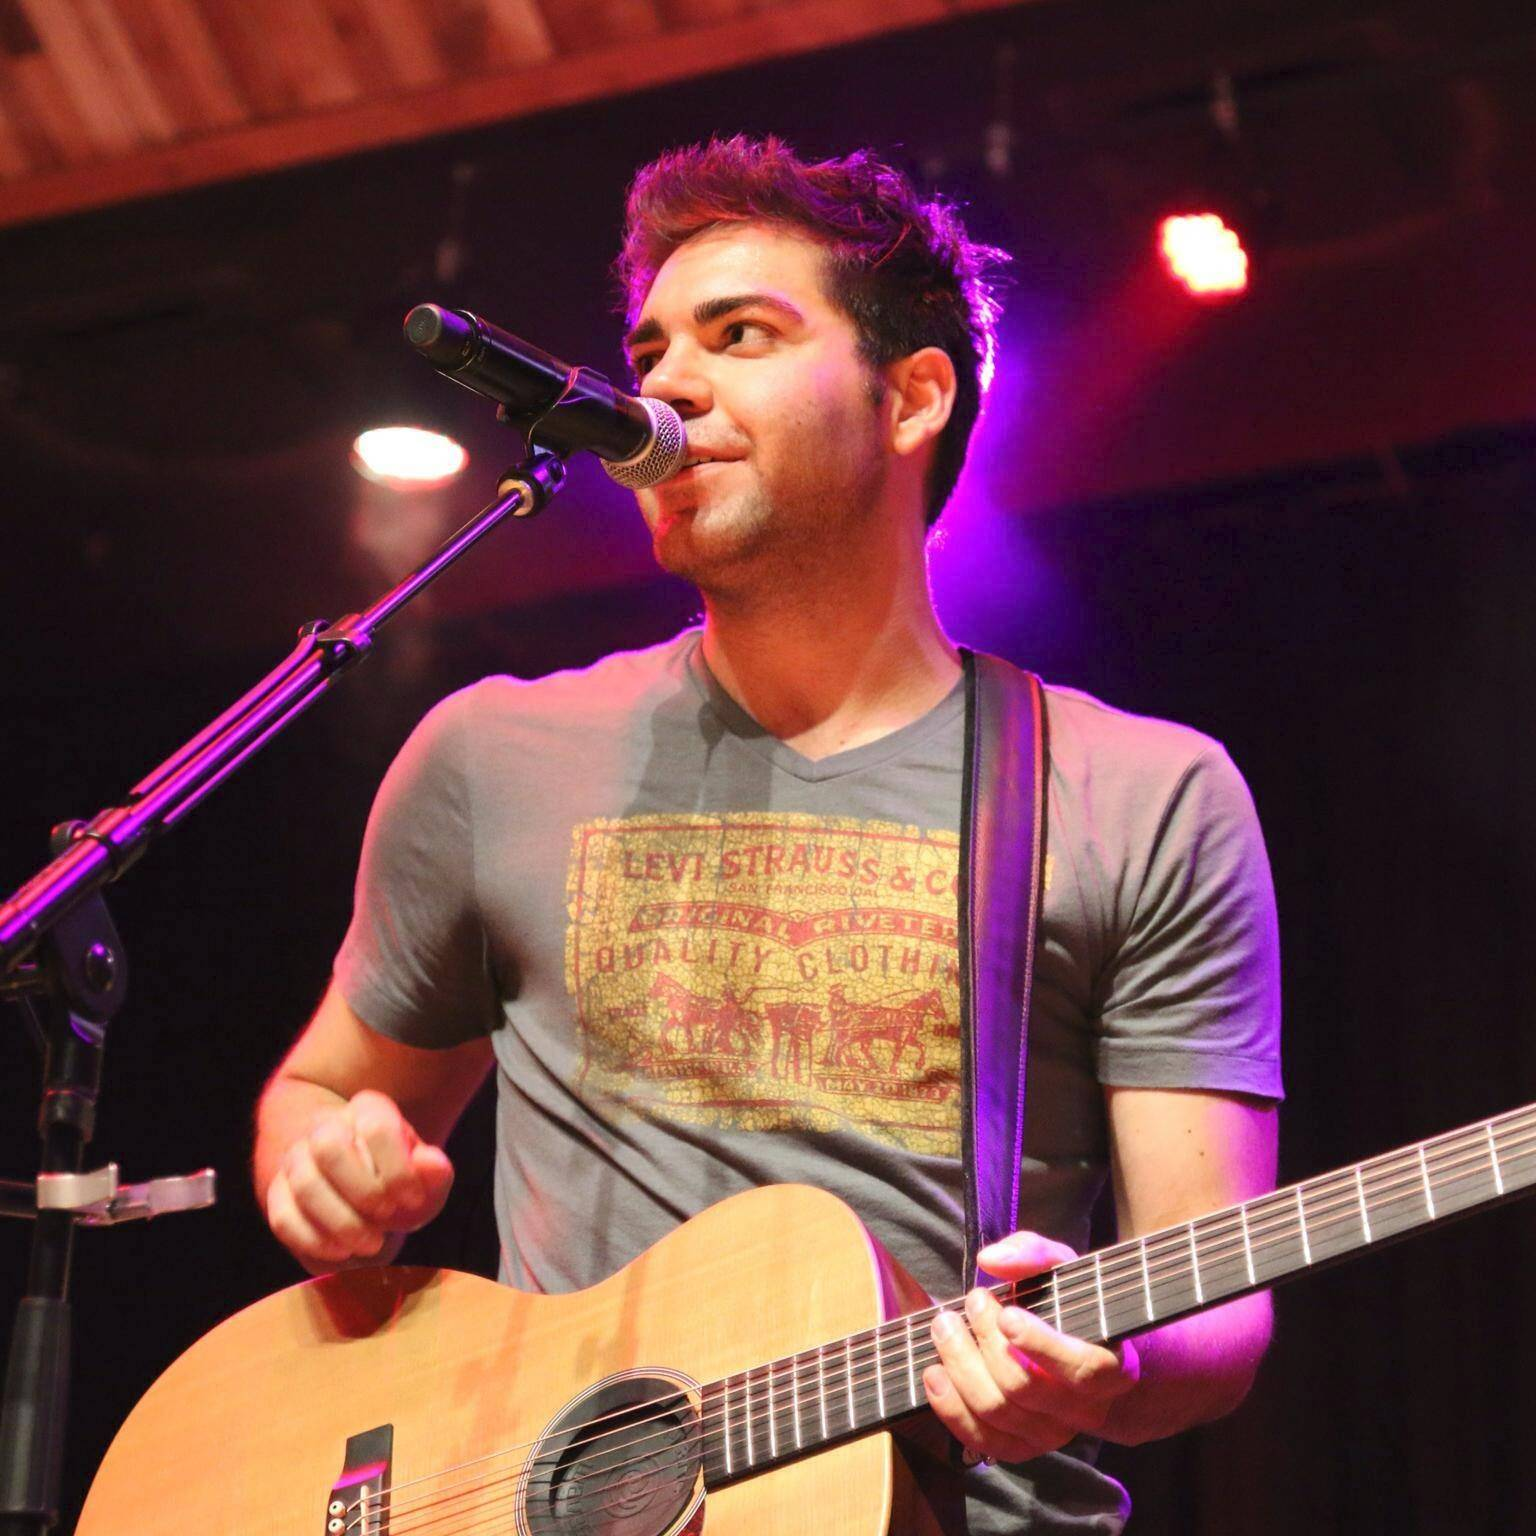 Courtesy of andrewsalgado.netCountry star Andrew Salgado brings a fresh face to traditional country with a show at the Skokie Theatre, Friday, March 13.